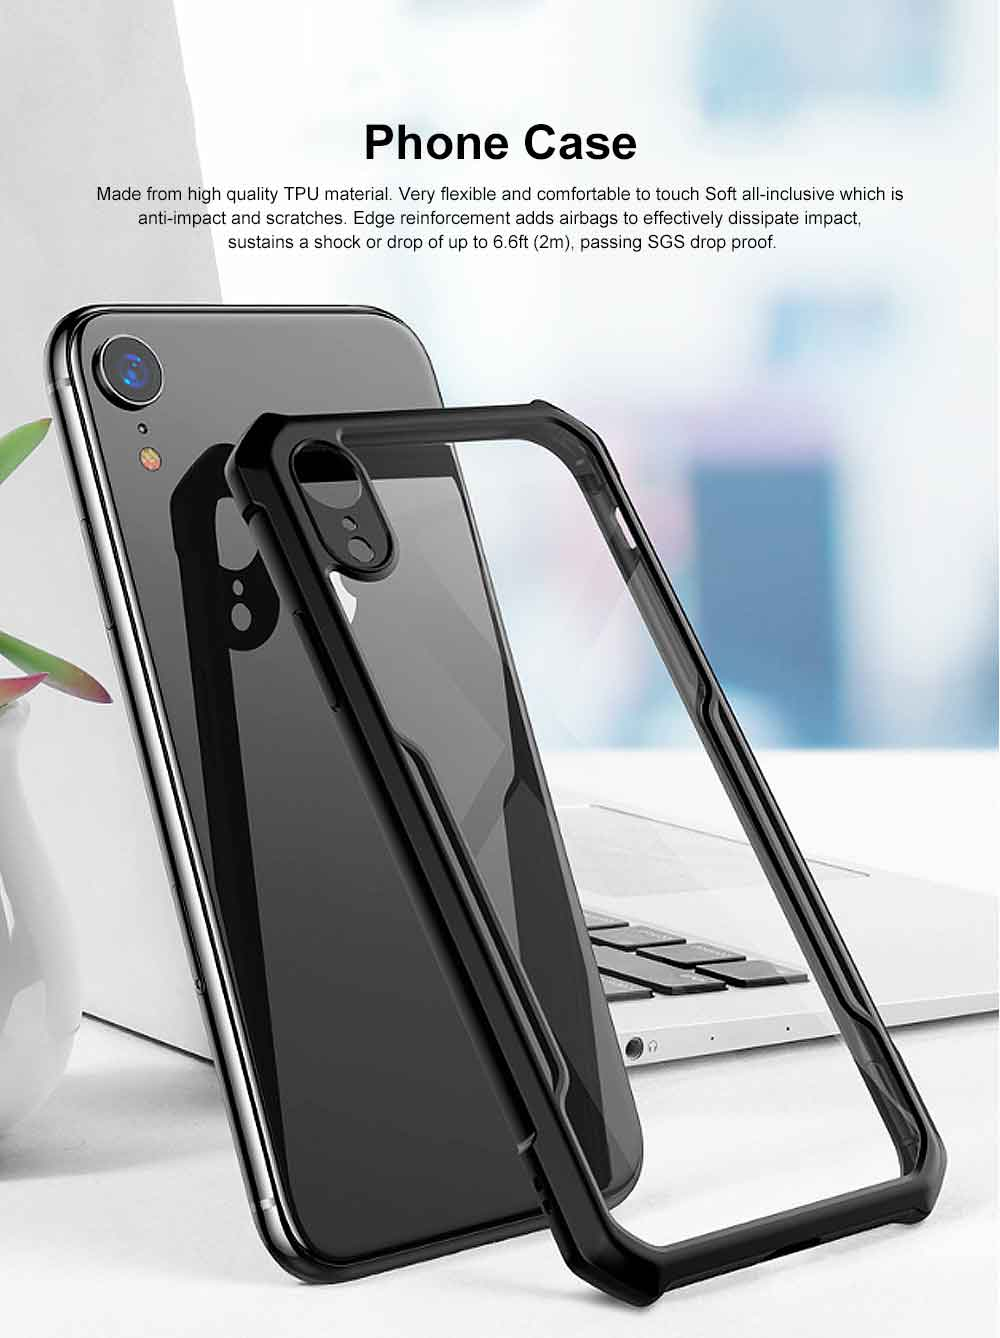 Phone Protective Case Soft Silicone TPU Transparent Cover Case Slim Thin Phone Protection Shell Clear Cover for iPhone 7 Plus, iPhone 6s, iPhone 8, iPhone X, iPhone XS, XS MAX, XR 0